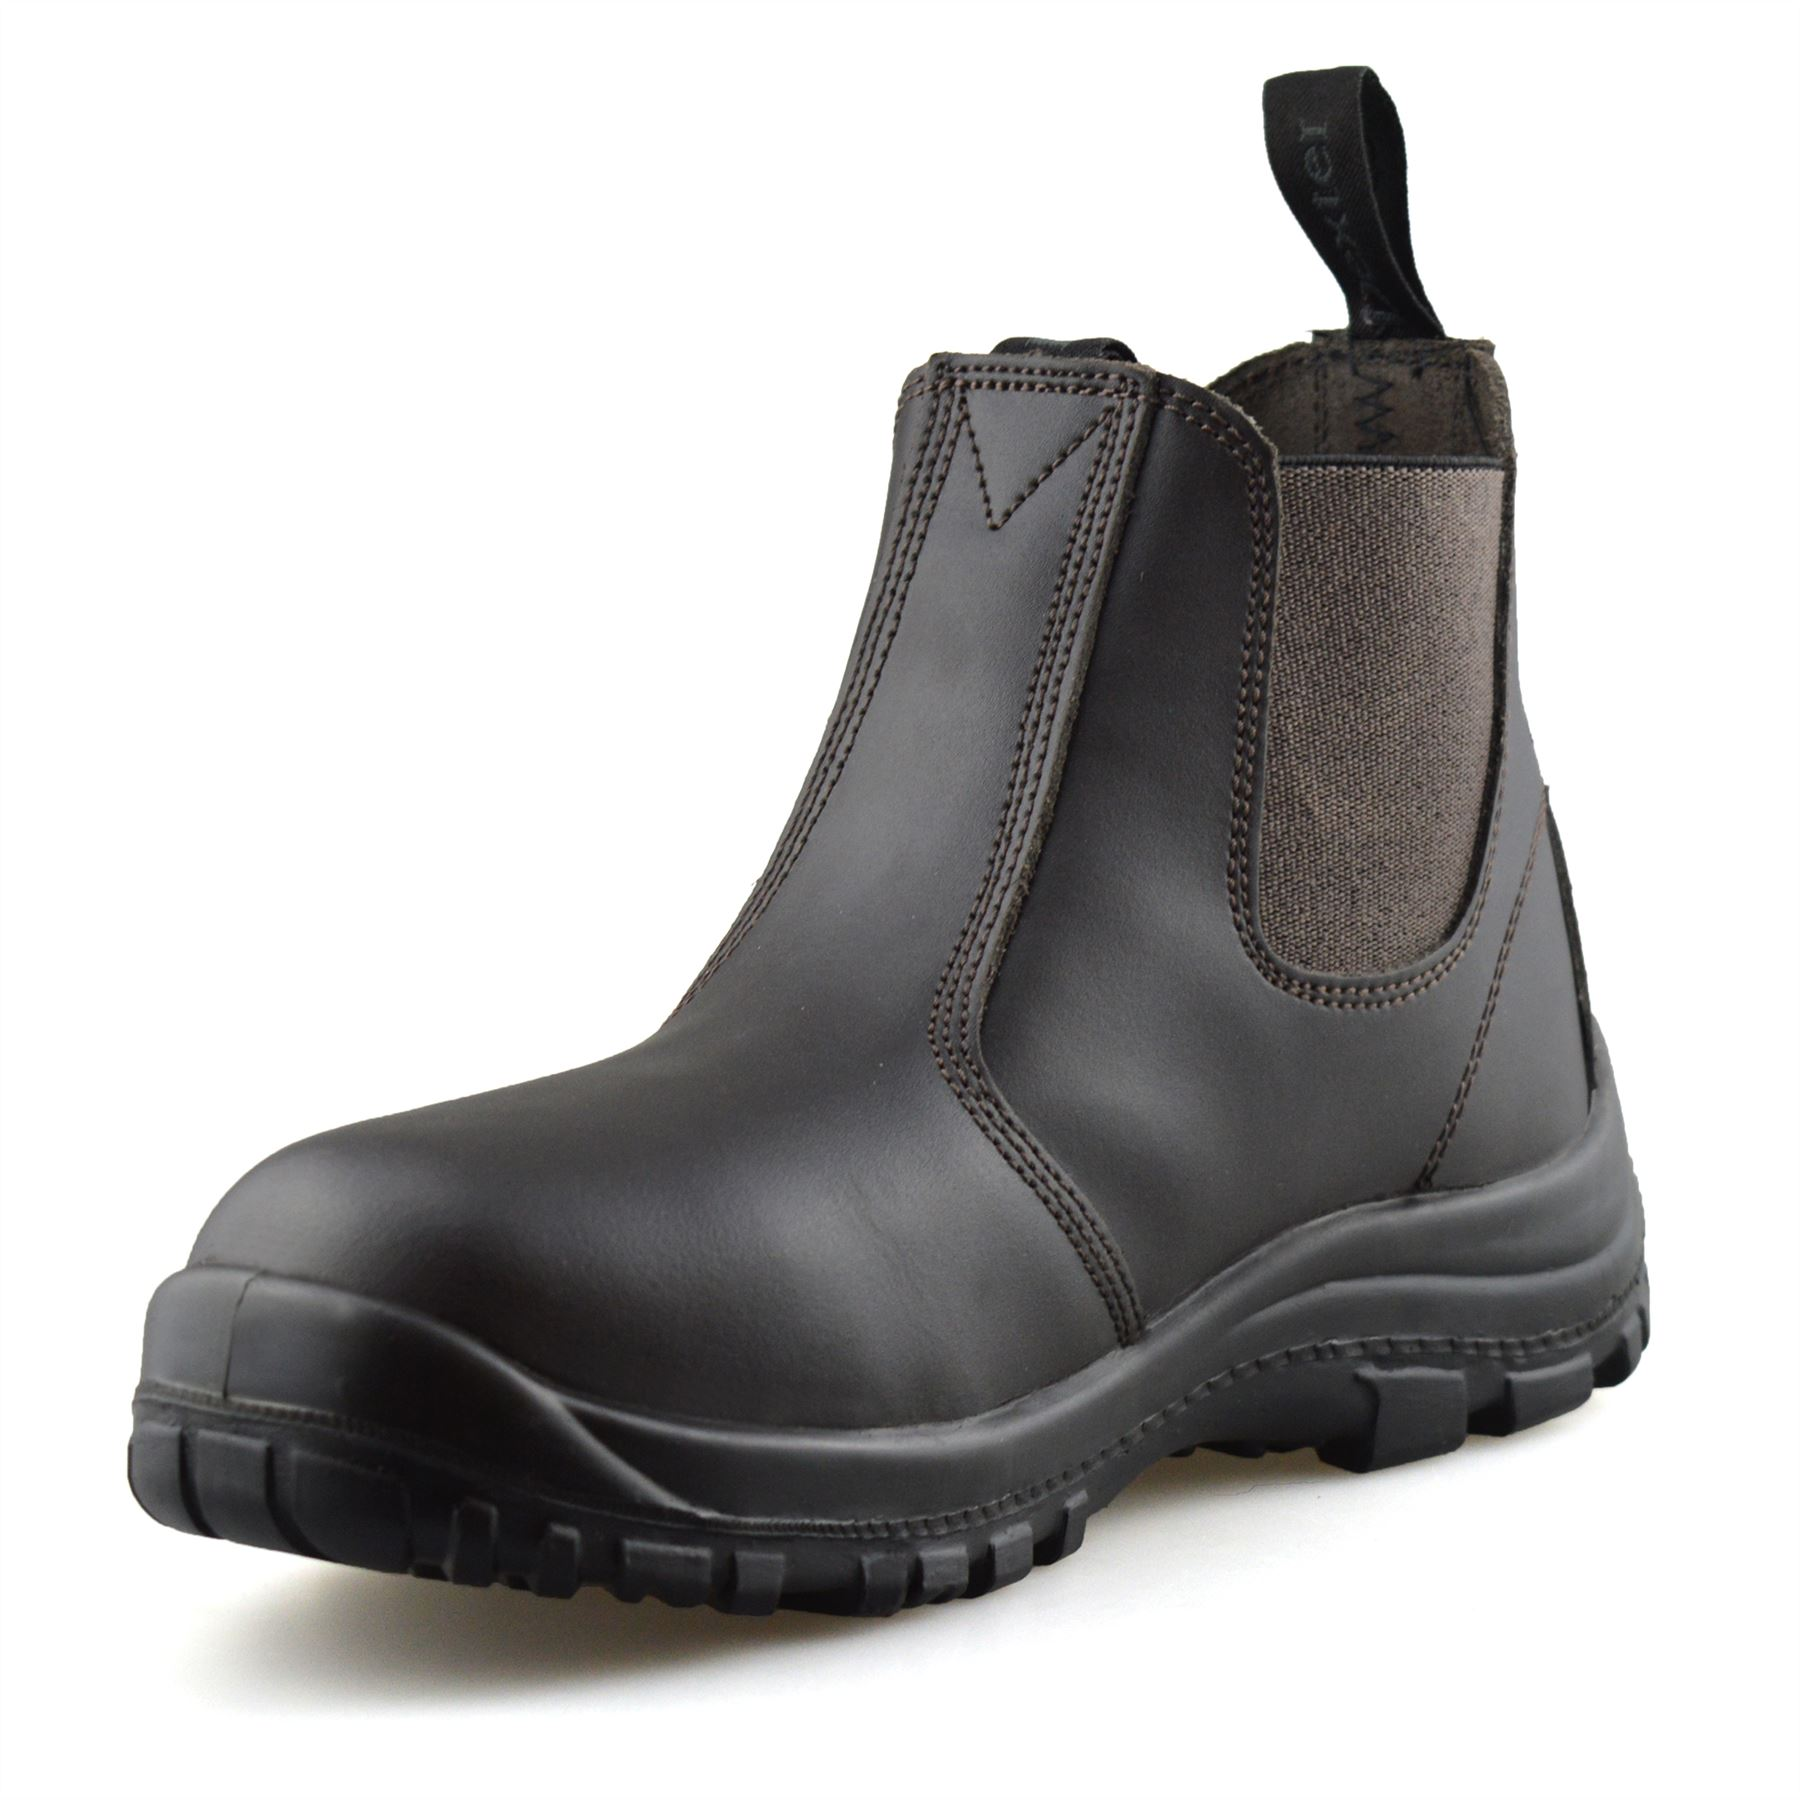 Mens-Leather-Wide-Fit-Chelsea-Ankle-Boots-Casual-Smart-Dealer-Work-Shoes-Size thumbnail 11